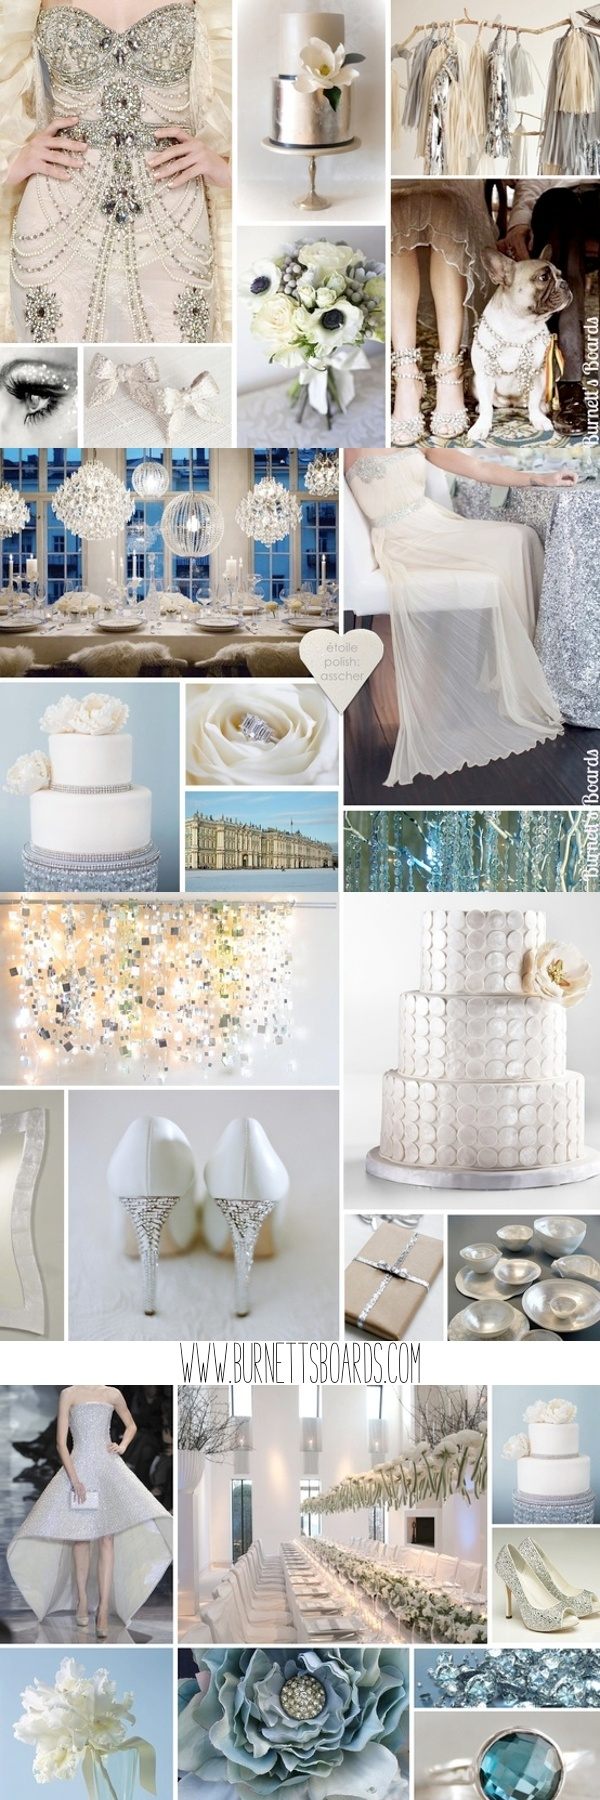 Silver wedding inspiration http://burnettsboards.com/category/metallics/